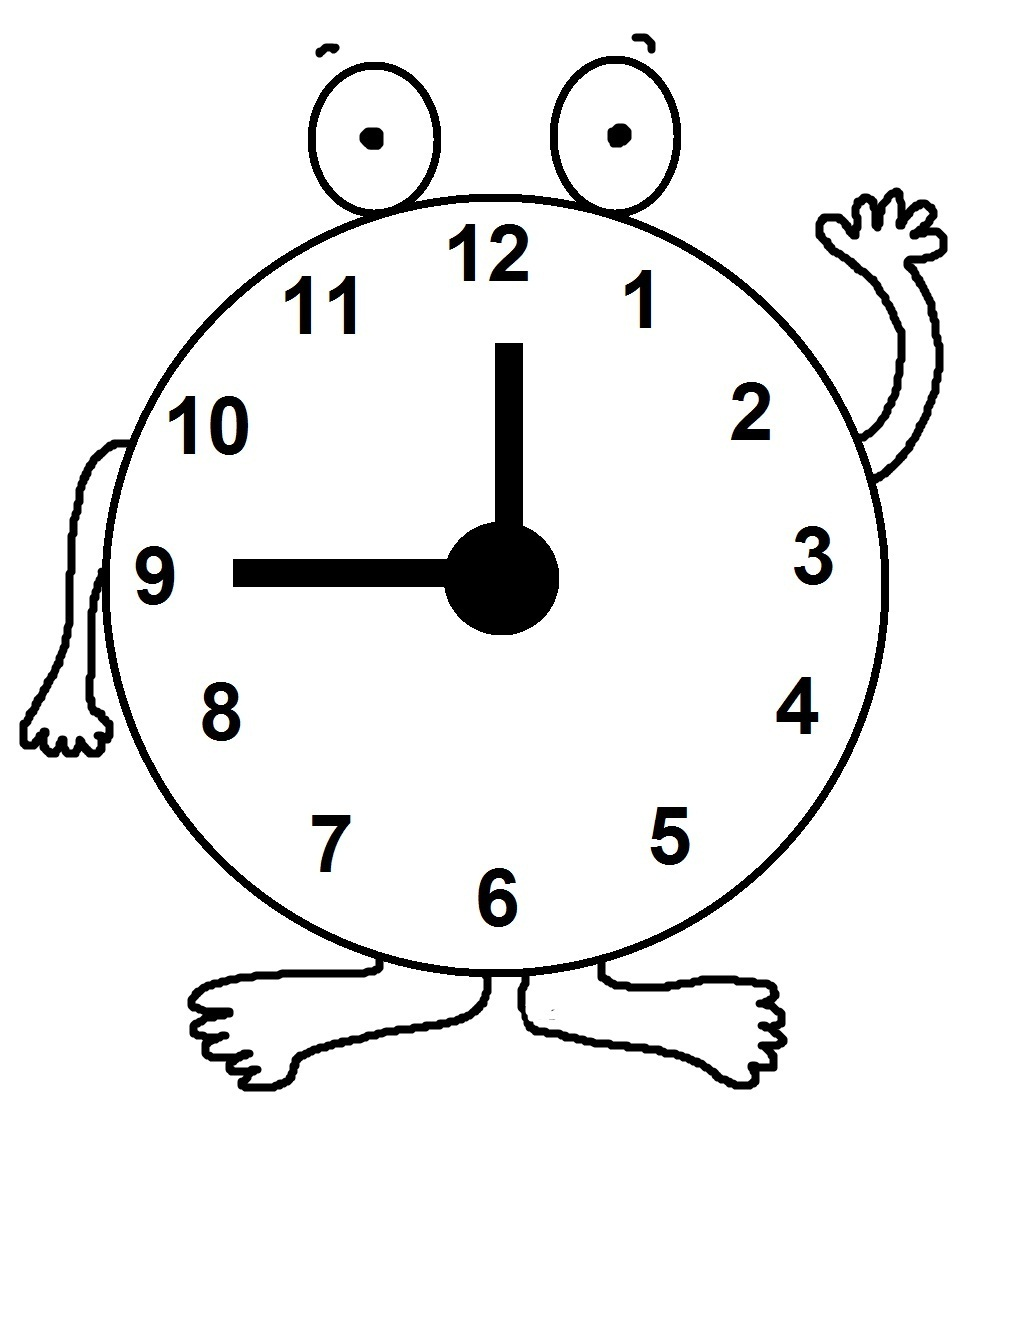 1019x1319 Cuckoo Clock Coloring Sheet Page Image Clipart Images